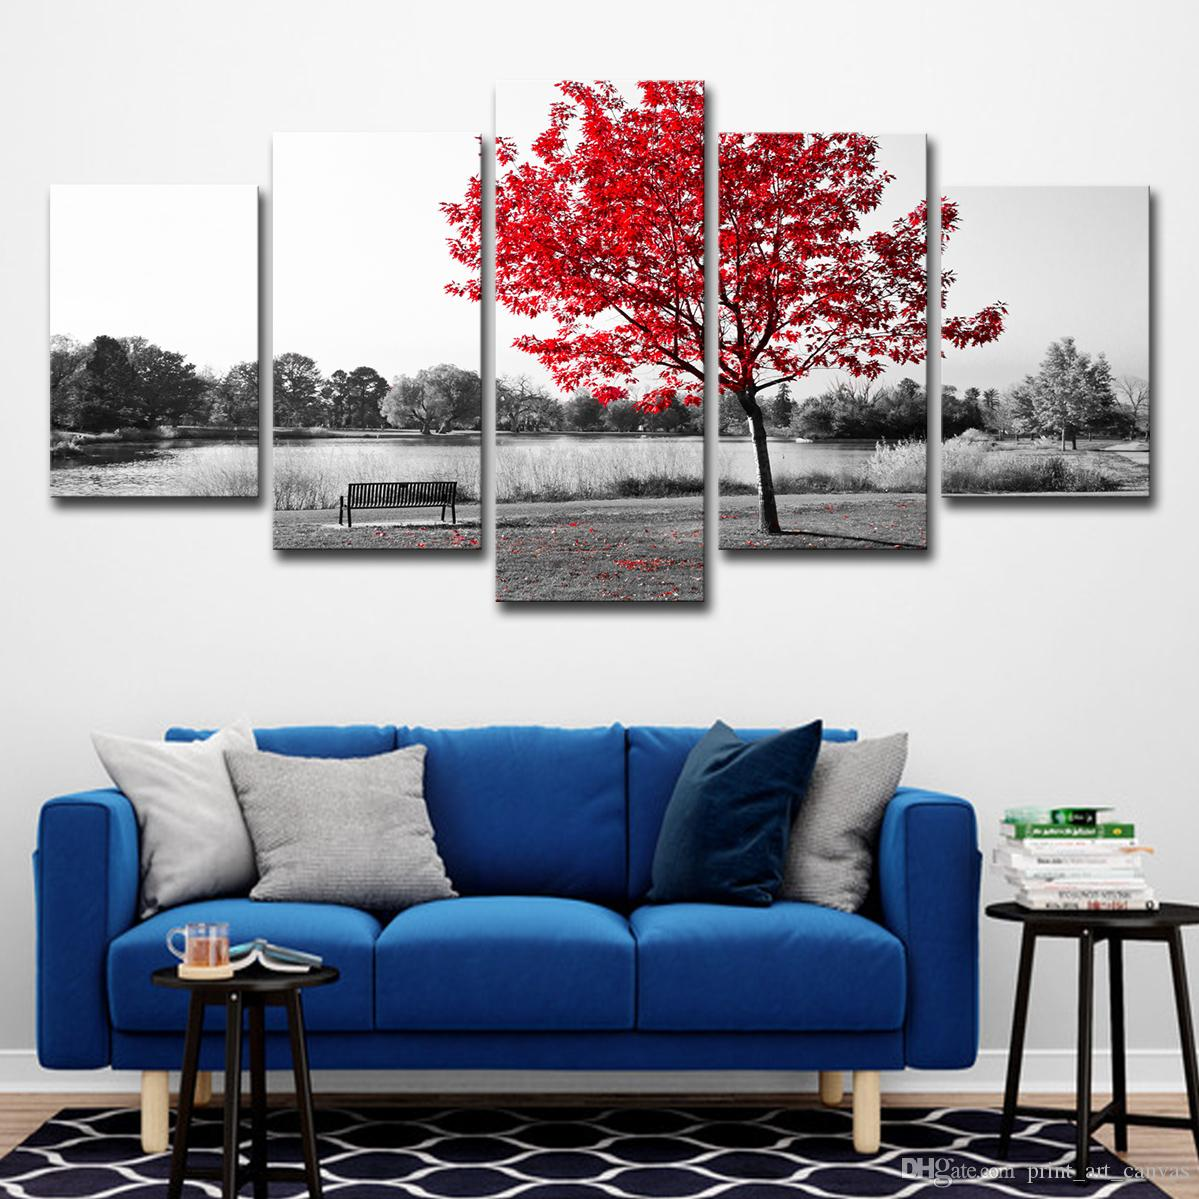 Canvas paintings hd prints home decor wall art red tree art scenery landscape poster for living room pictures art print print poster oil painting online